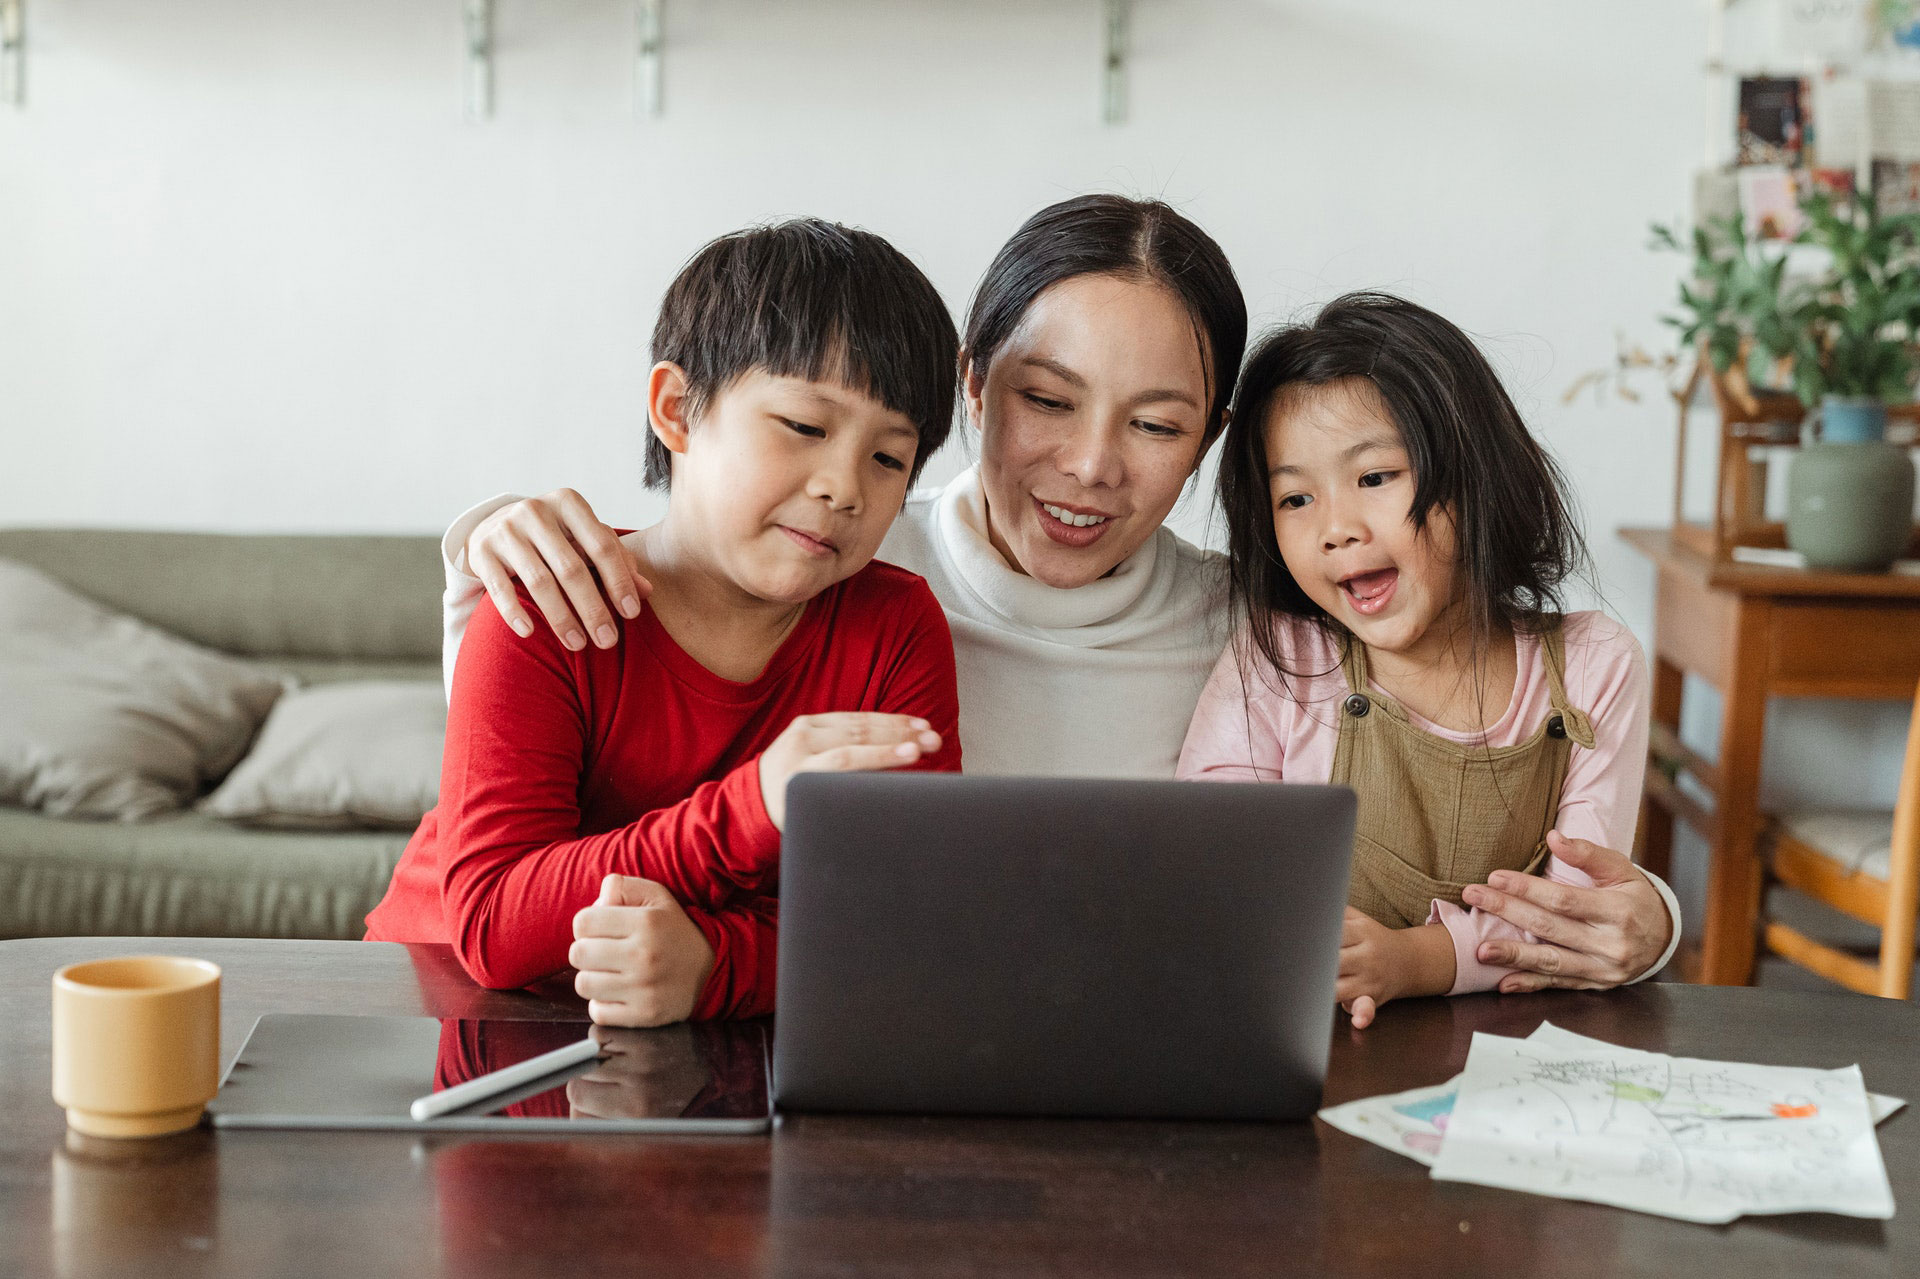 Mother with her son and daughter happily on computer at home